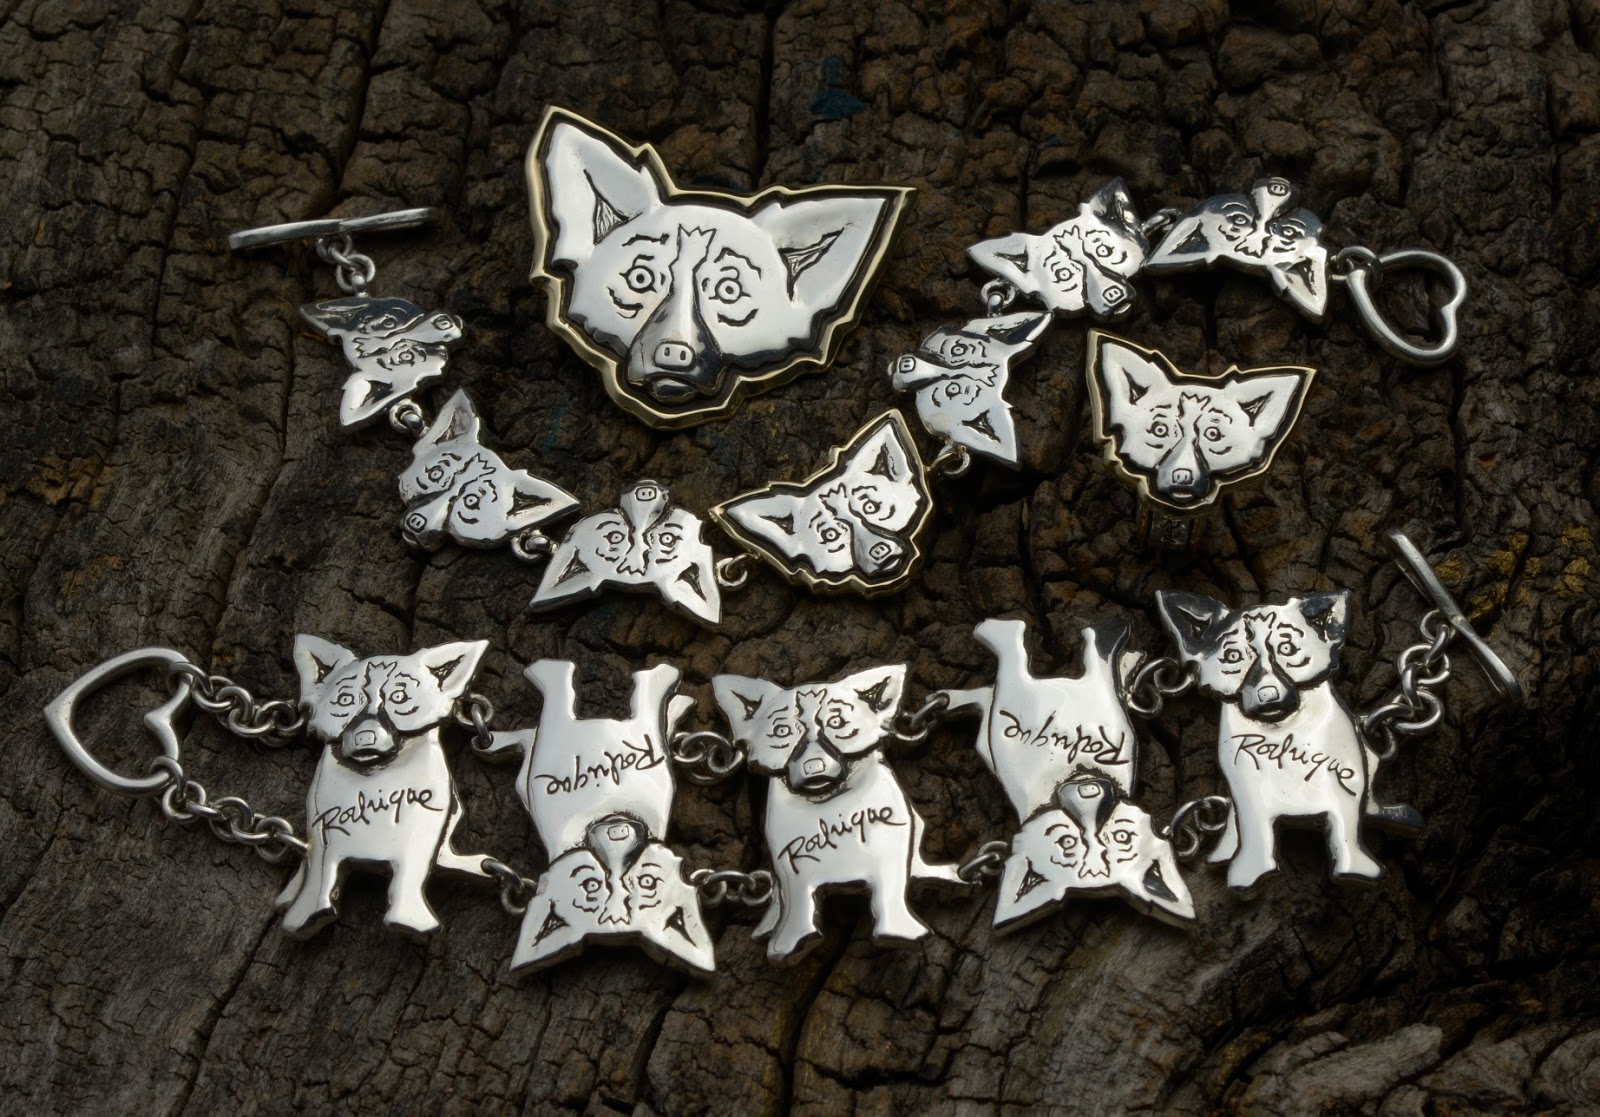 d59fc1671cb6b Musings of an Artist's Wife: Rodrigue Jewelry